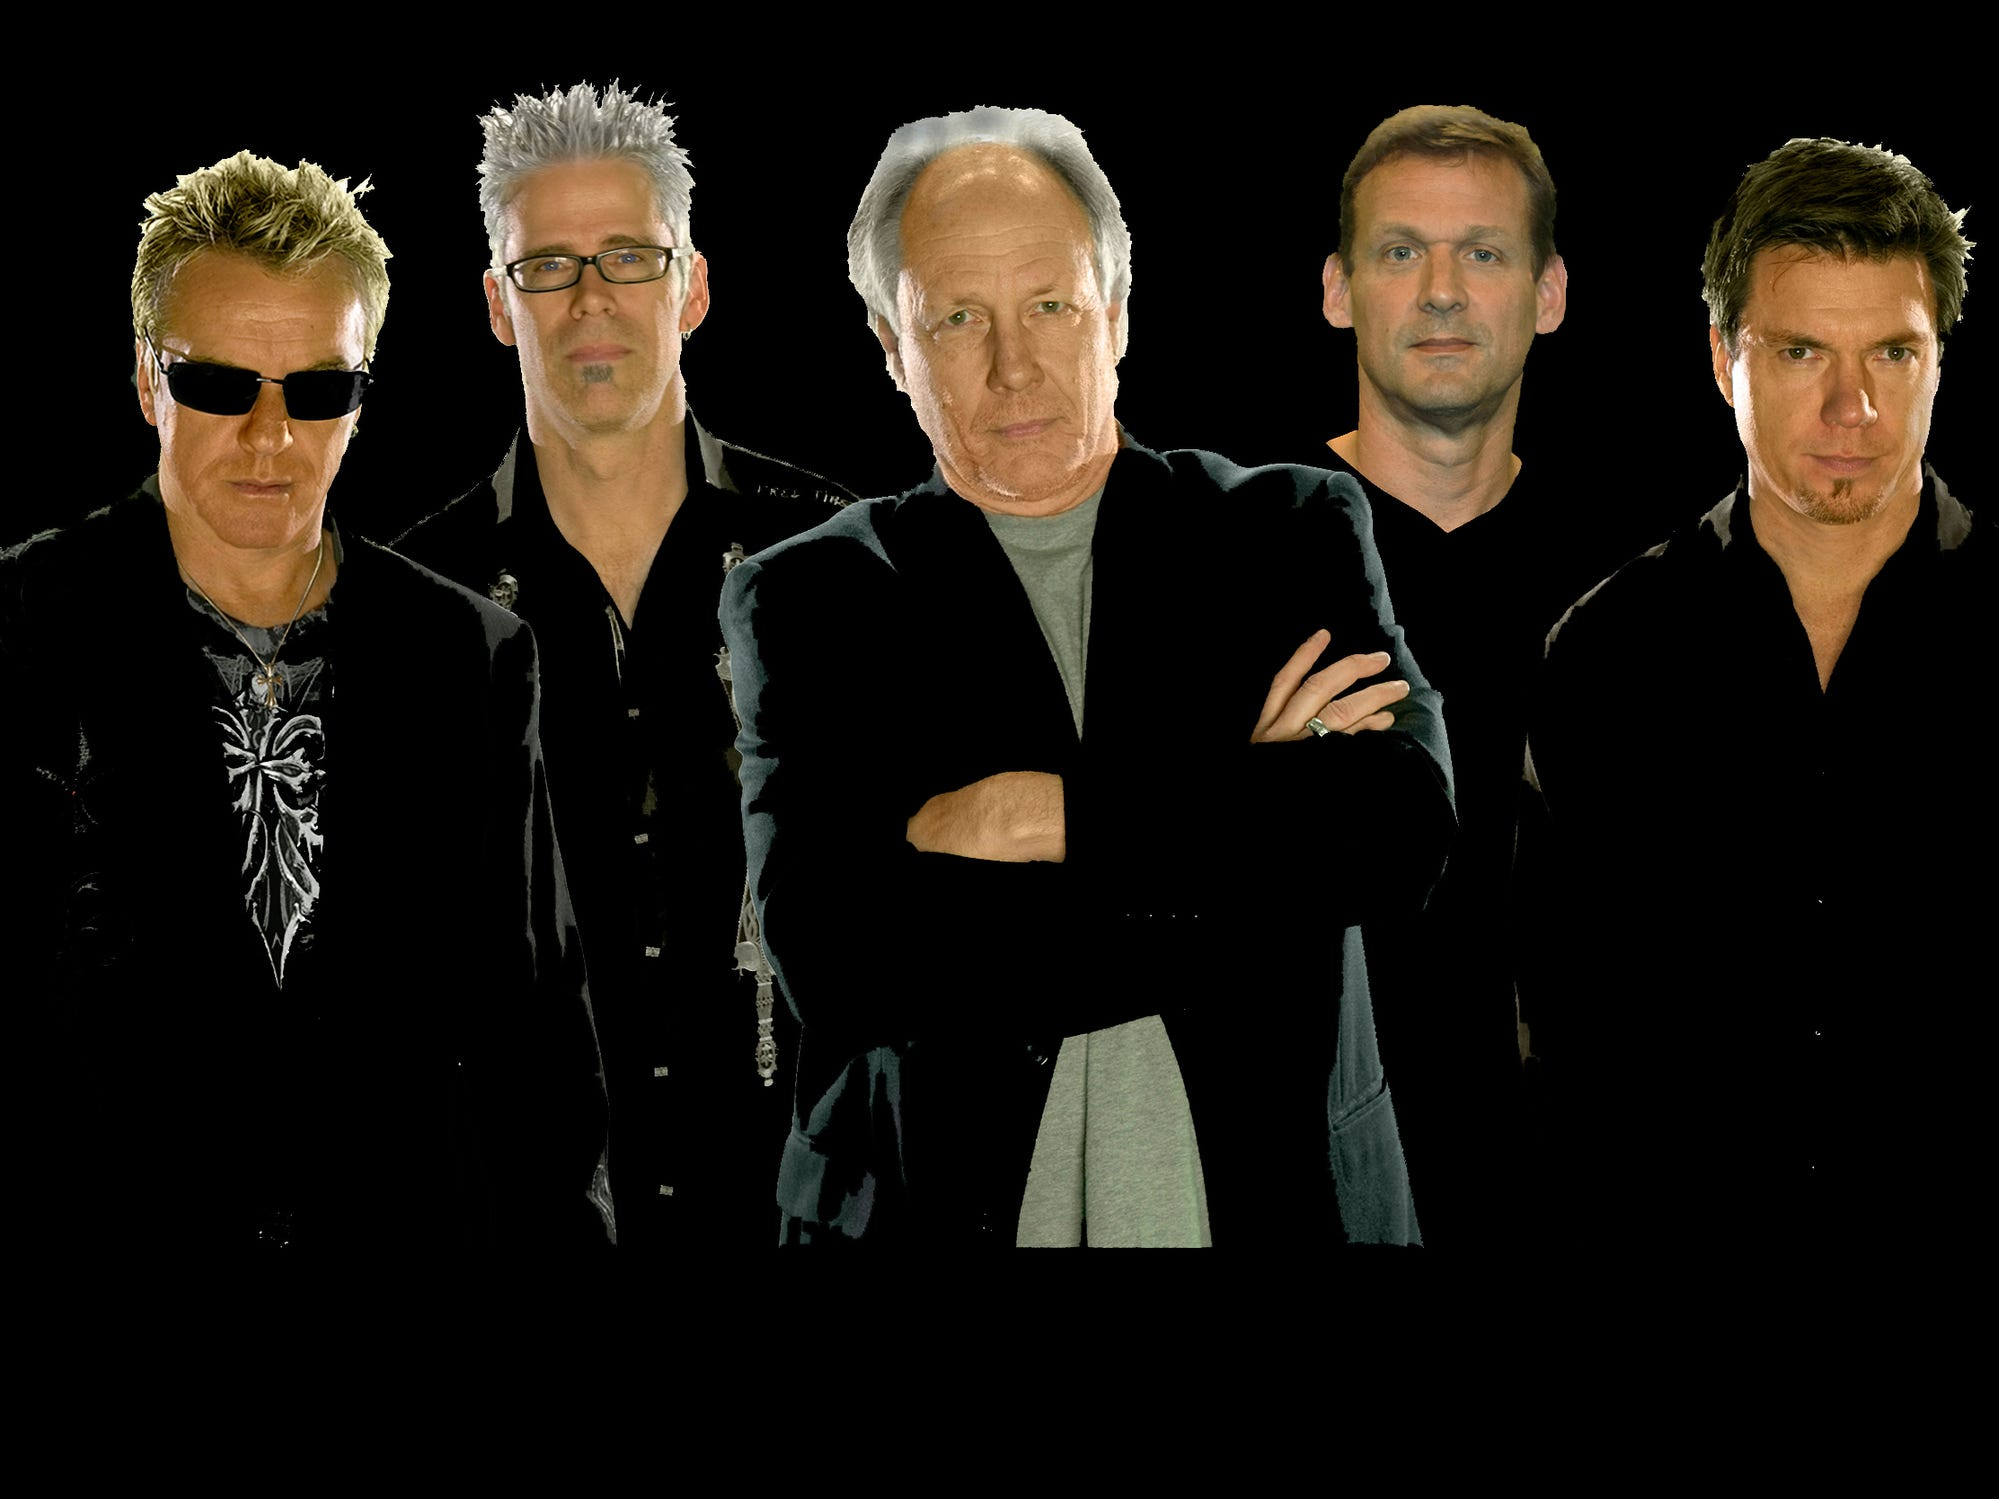 NOV. 28 